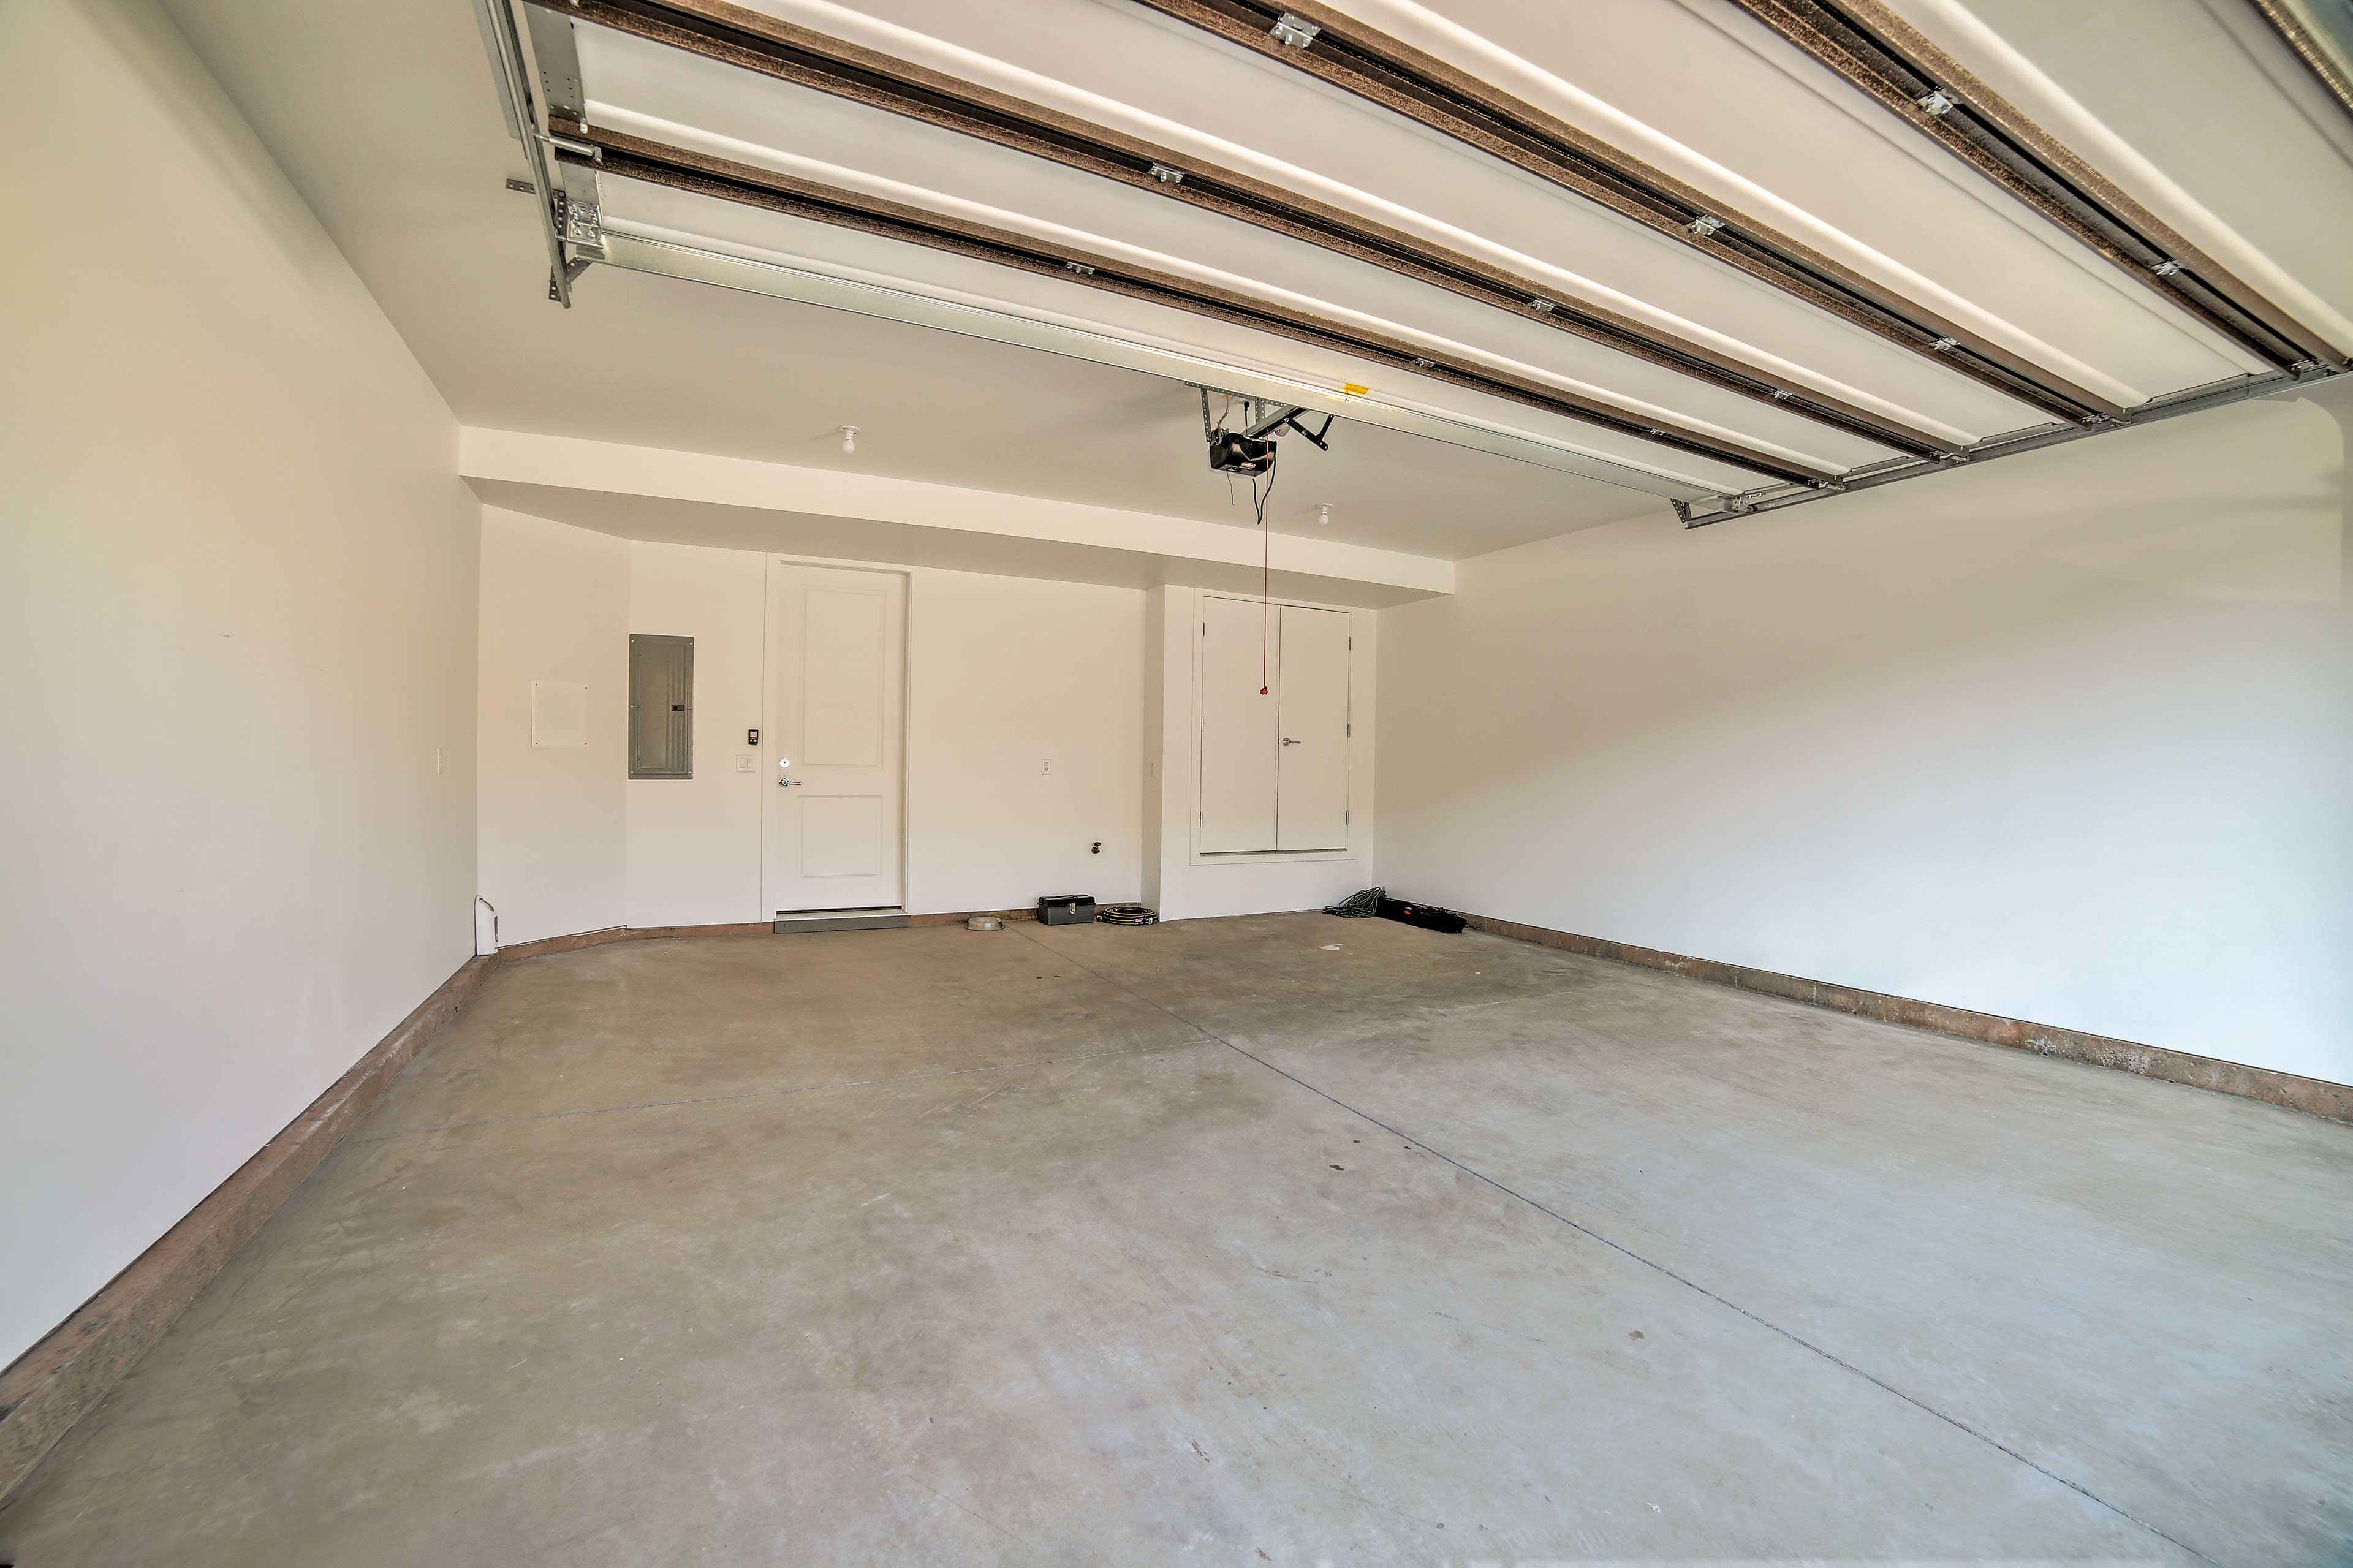 There is garage and driveway parking available.